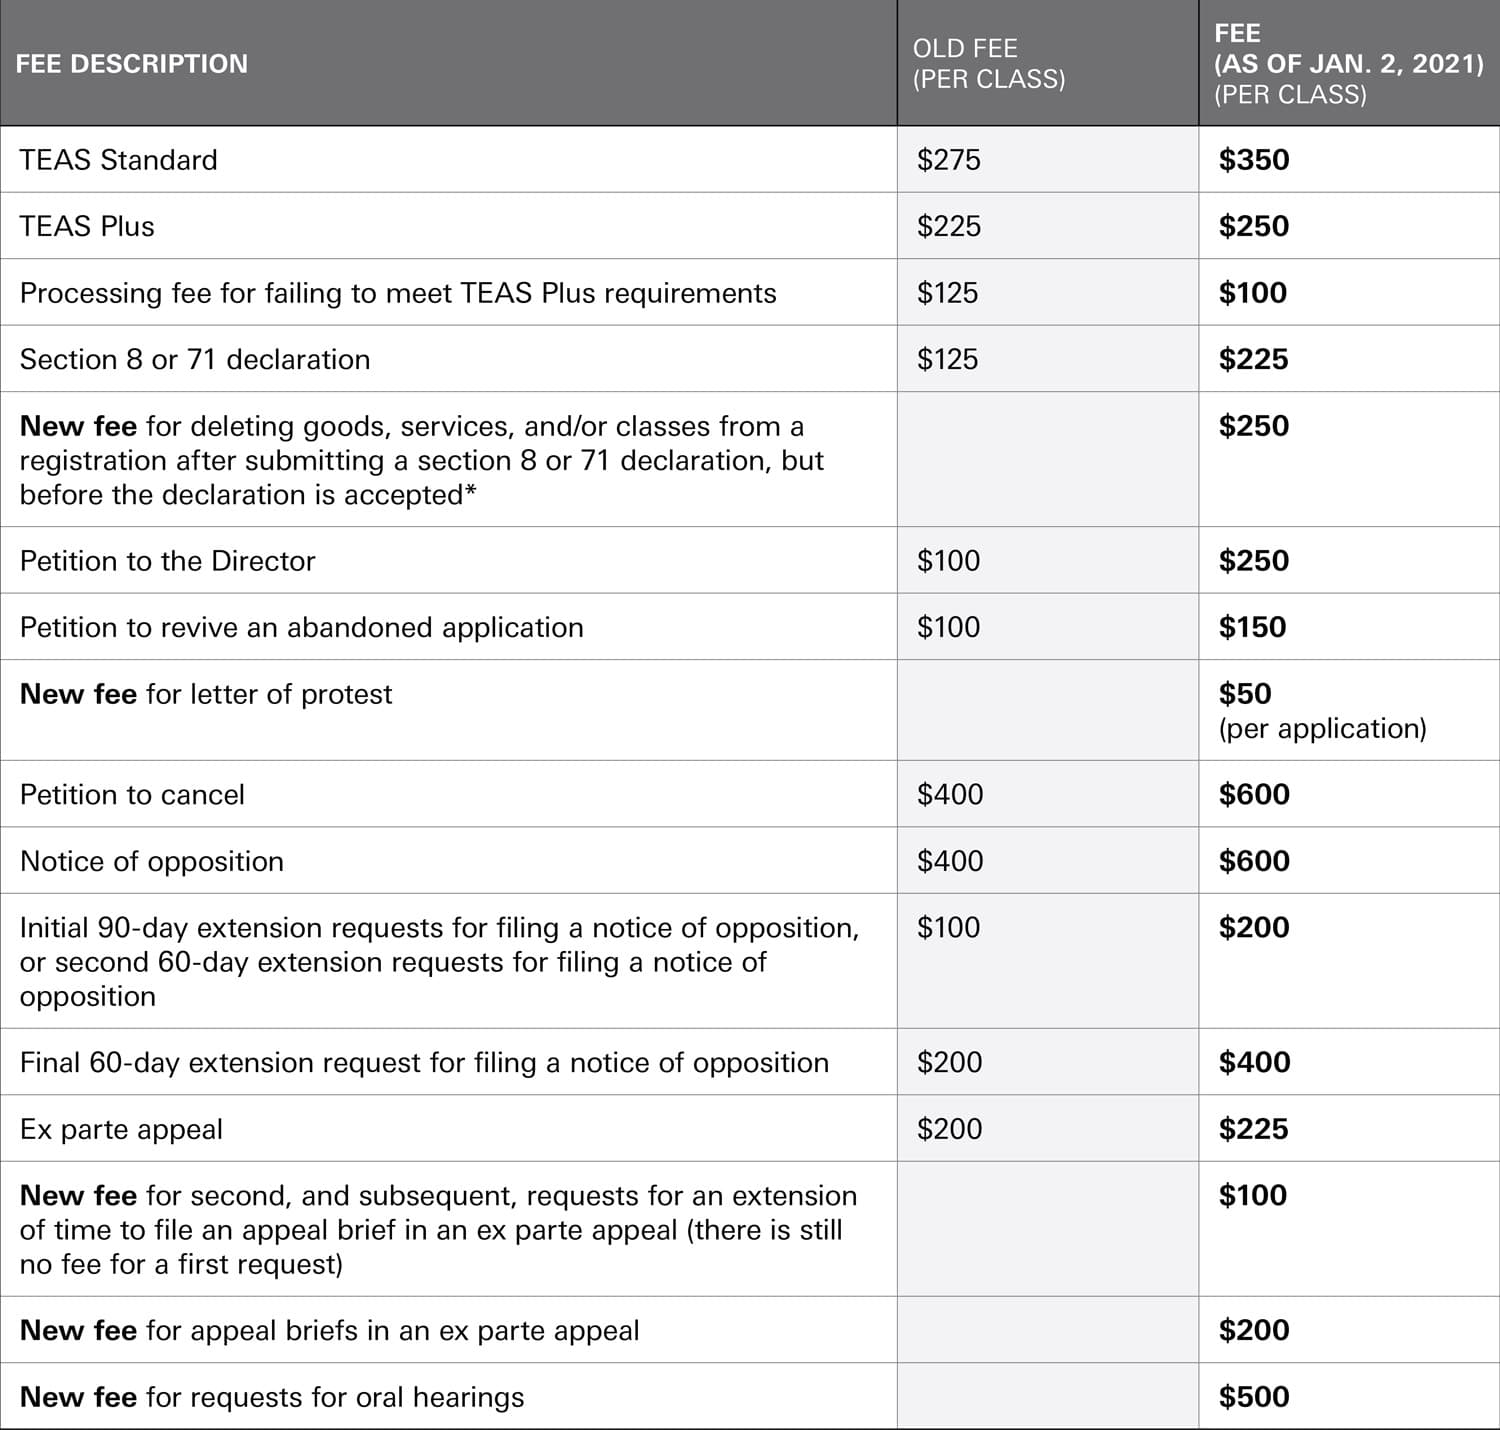 Table: New Fees for USPTO